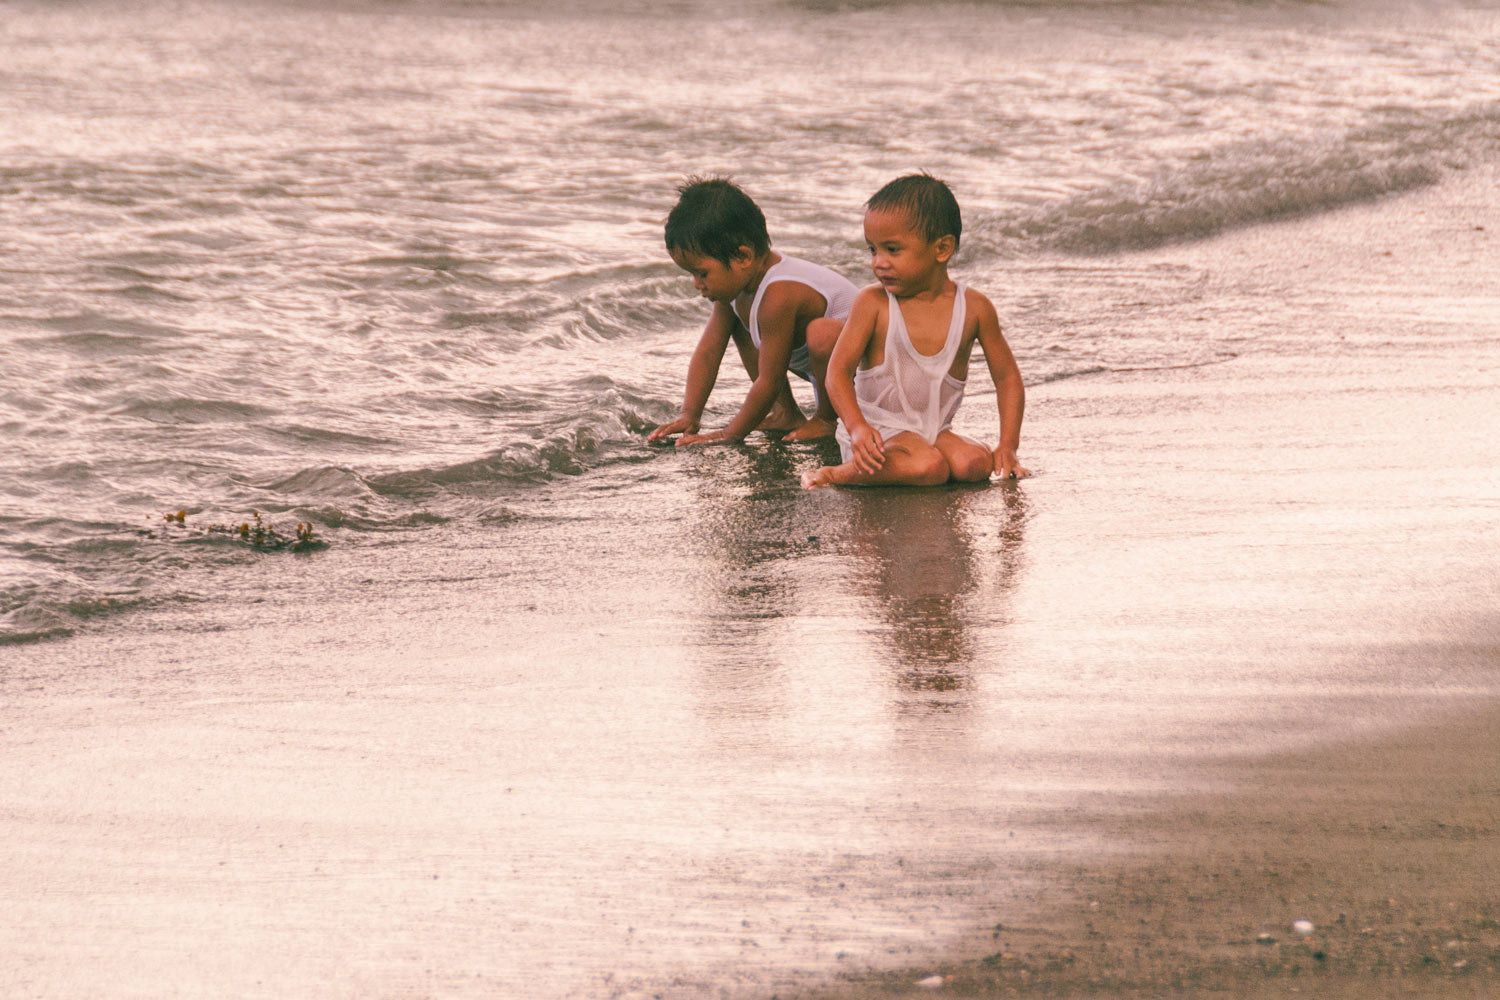 Two boys in the water